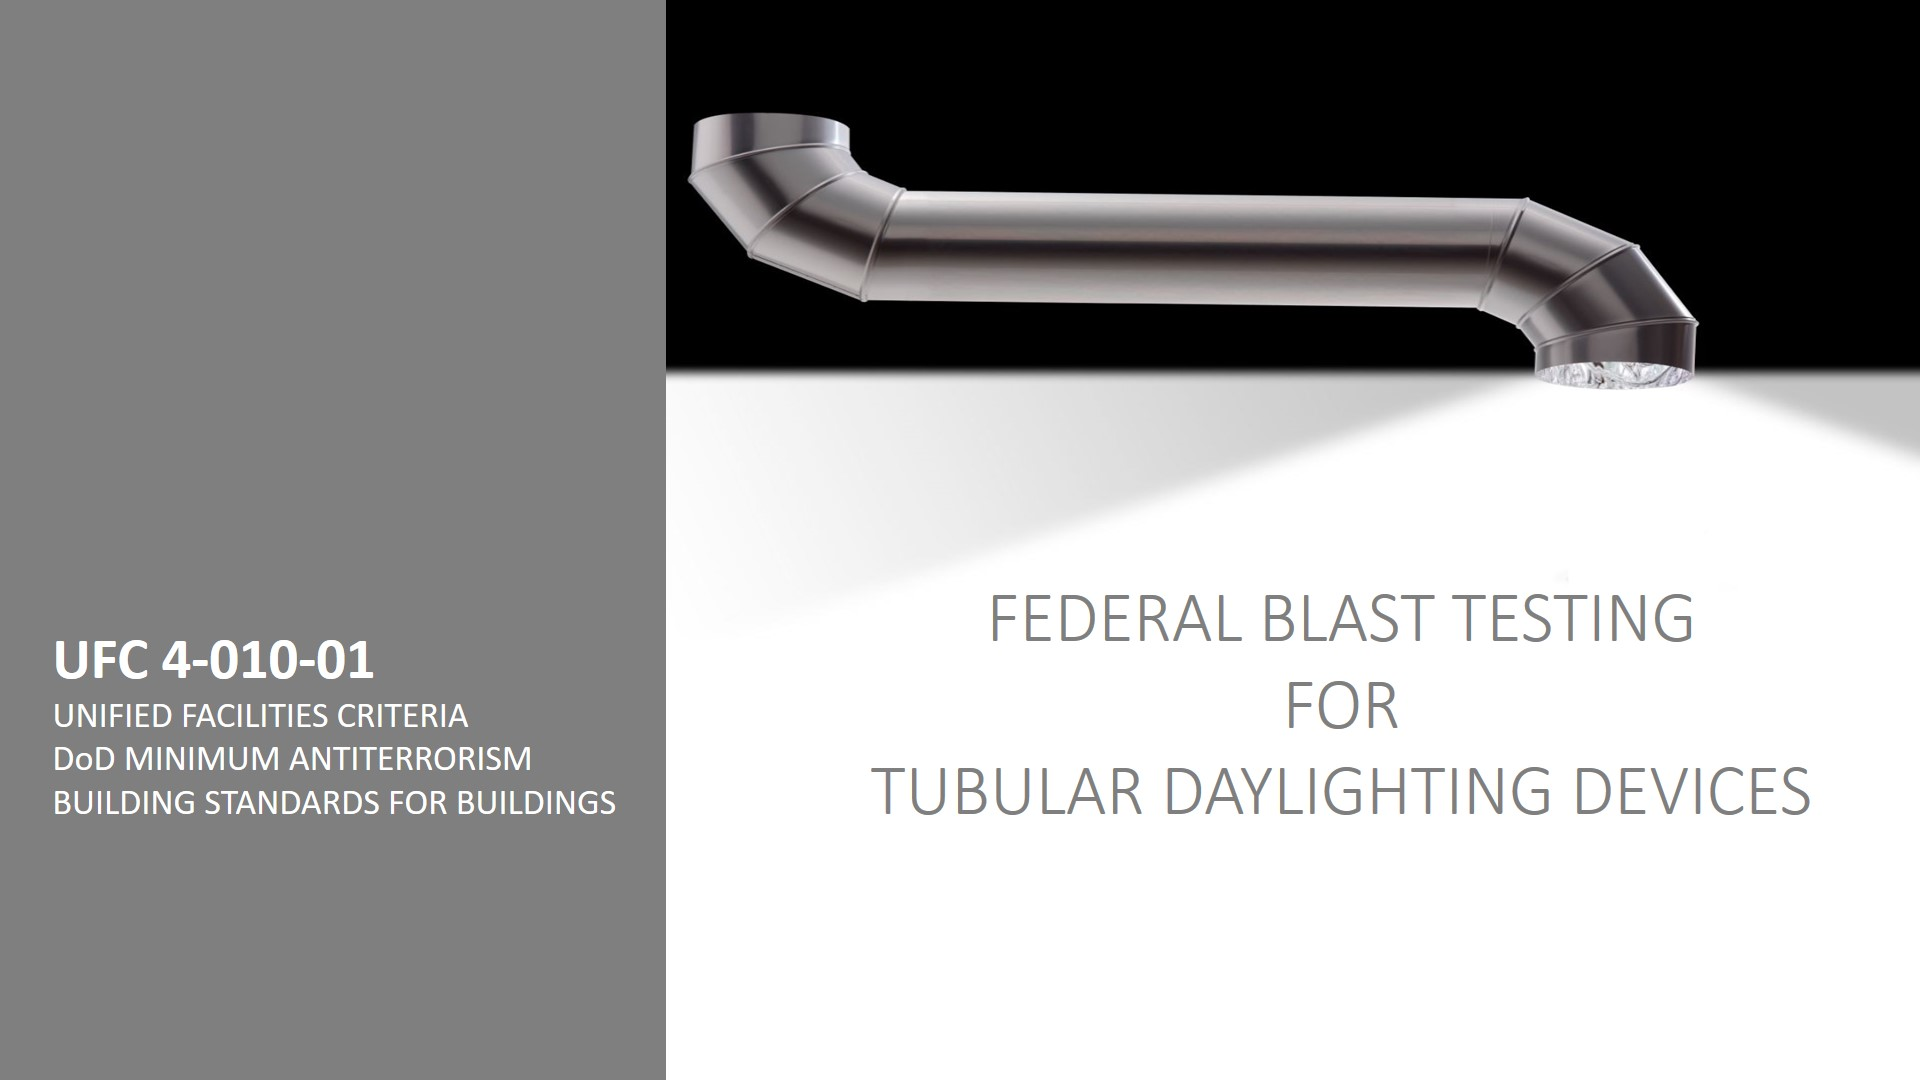 Federal blast testing for tubular daylighting devices.